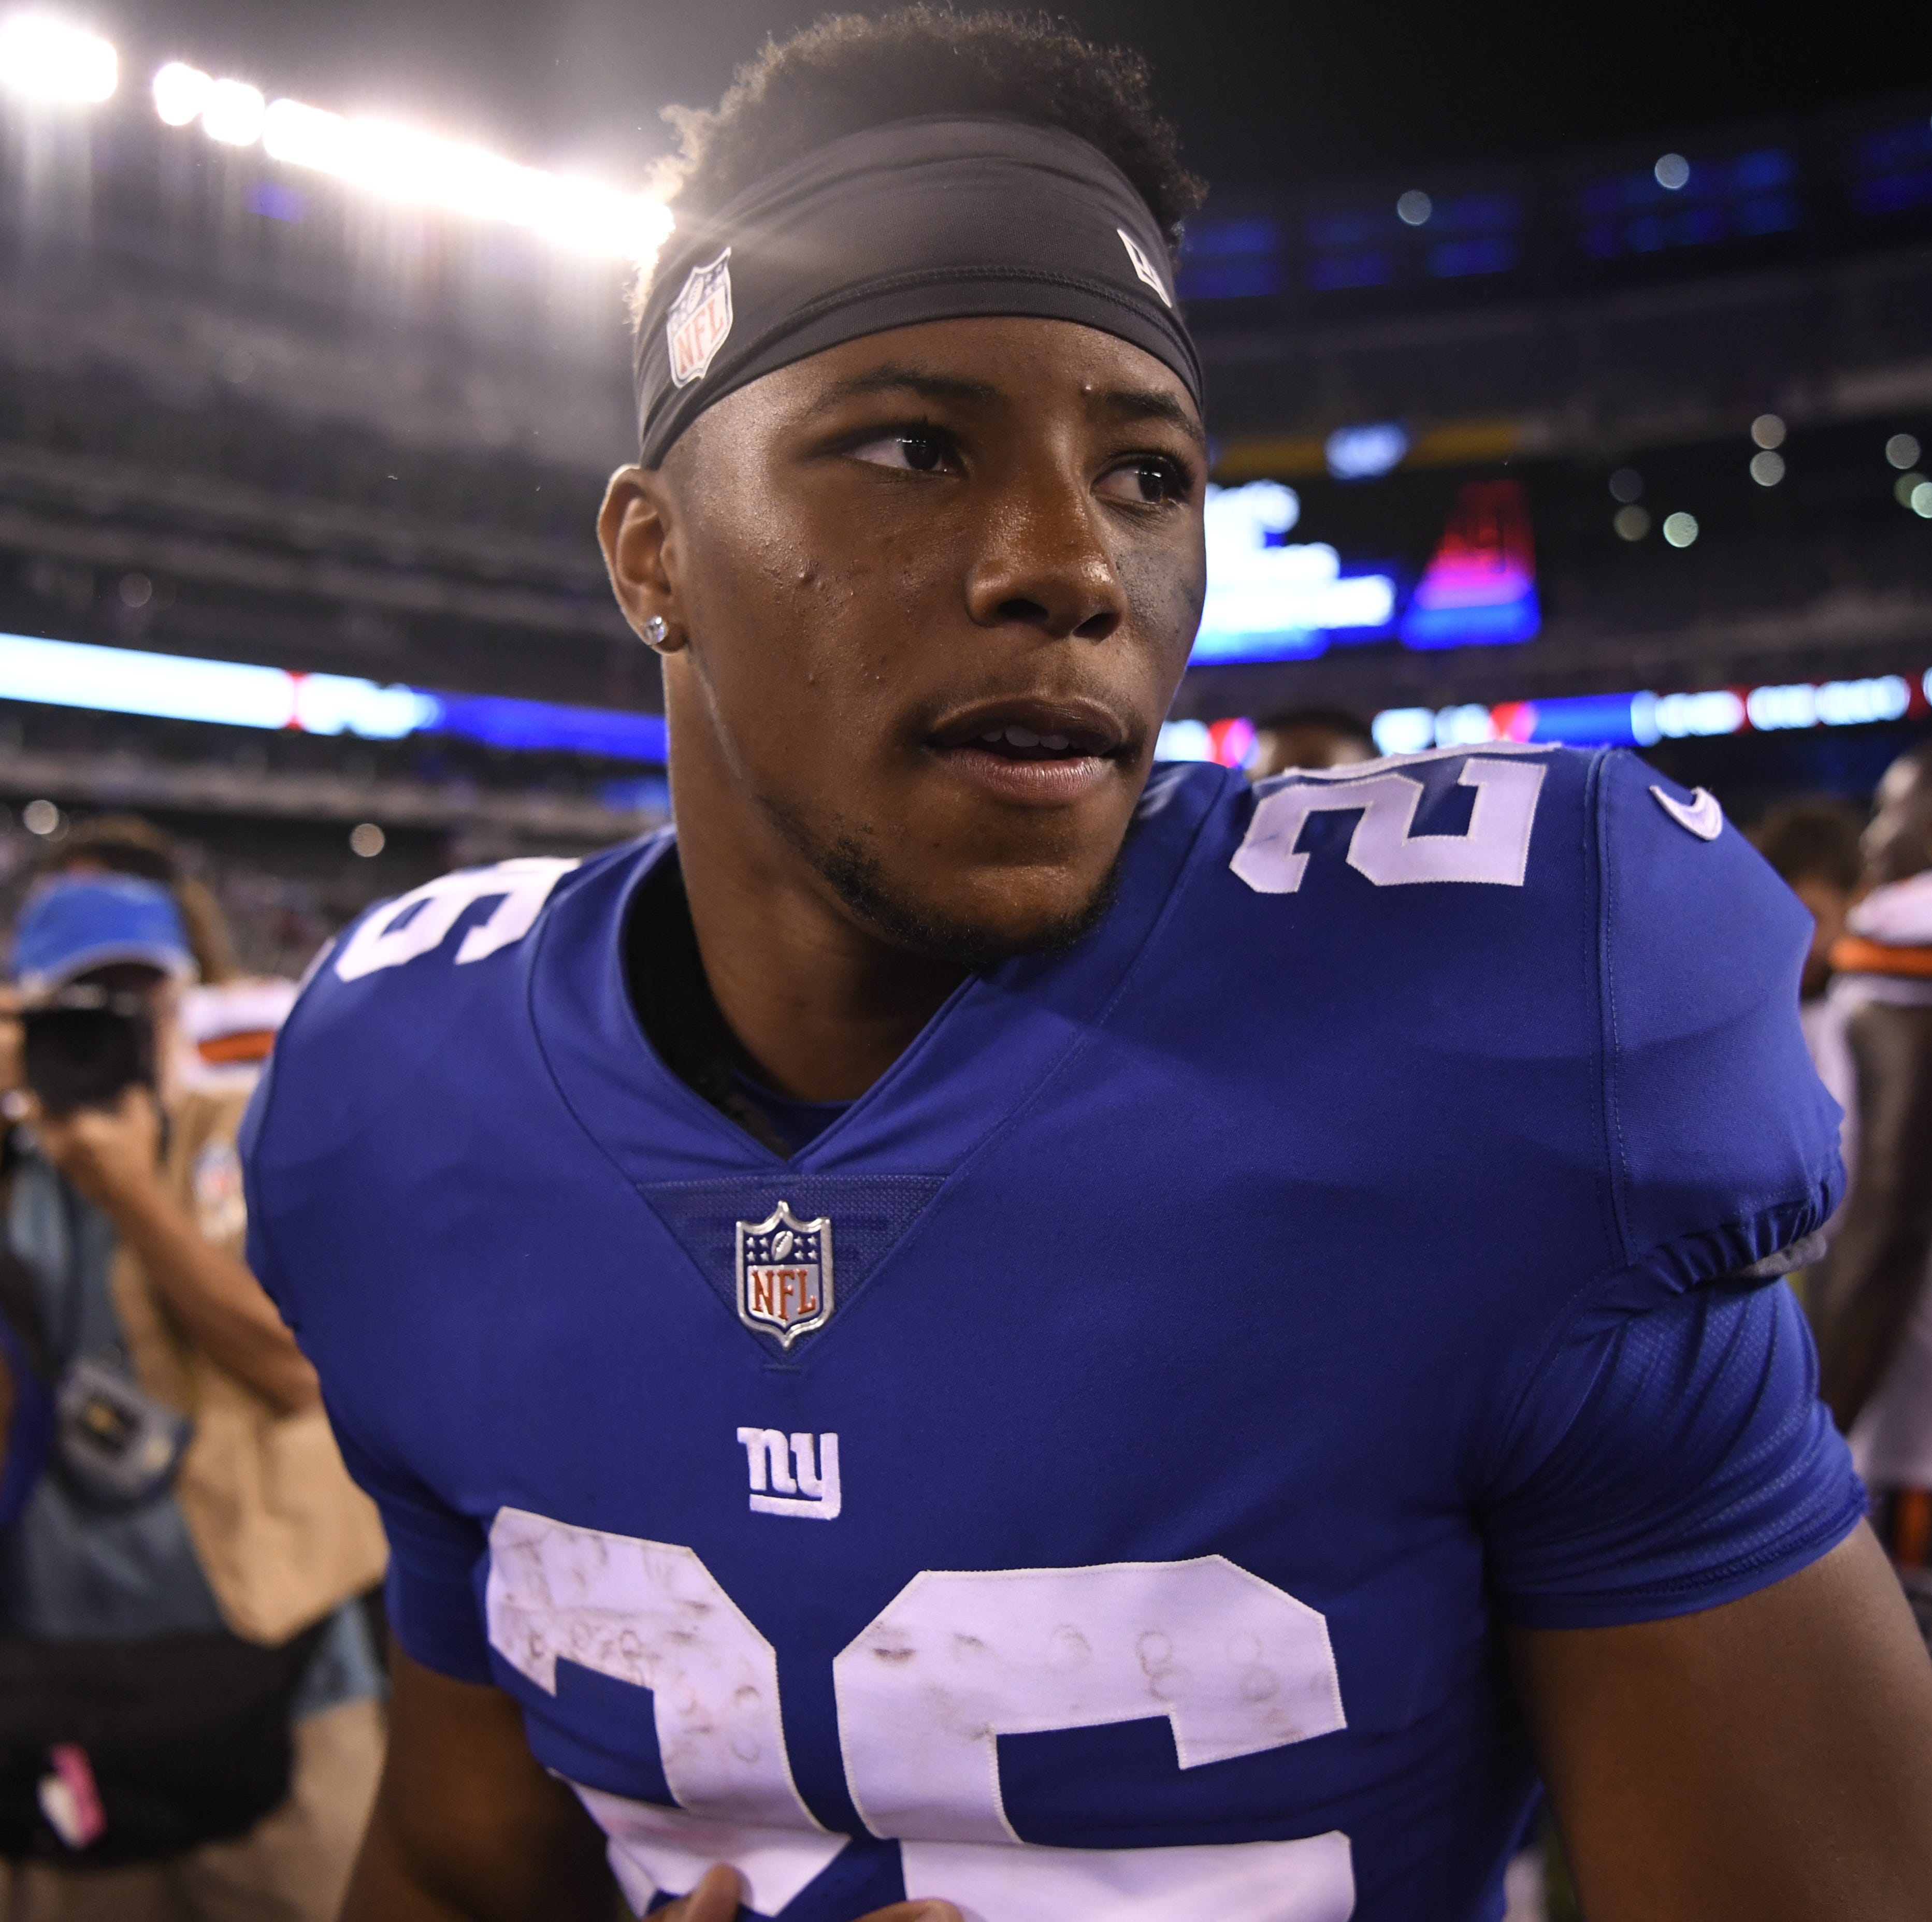 Saquon Barkley wows at NY Giants practice with big catch followed by first scare of camp